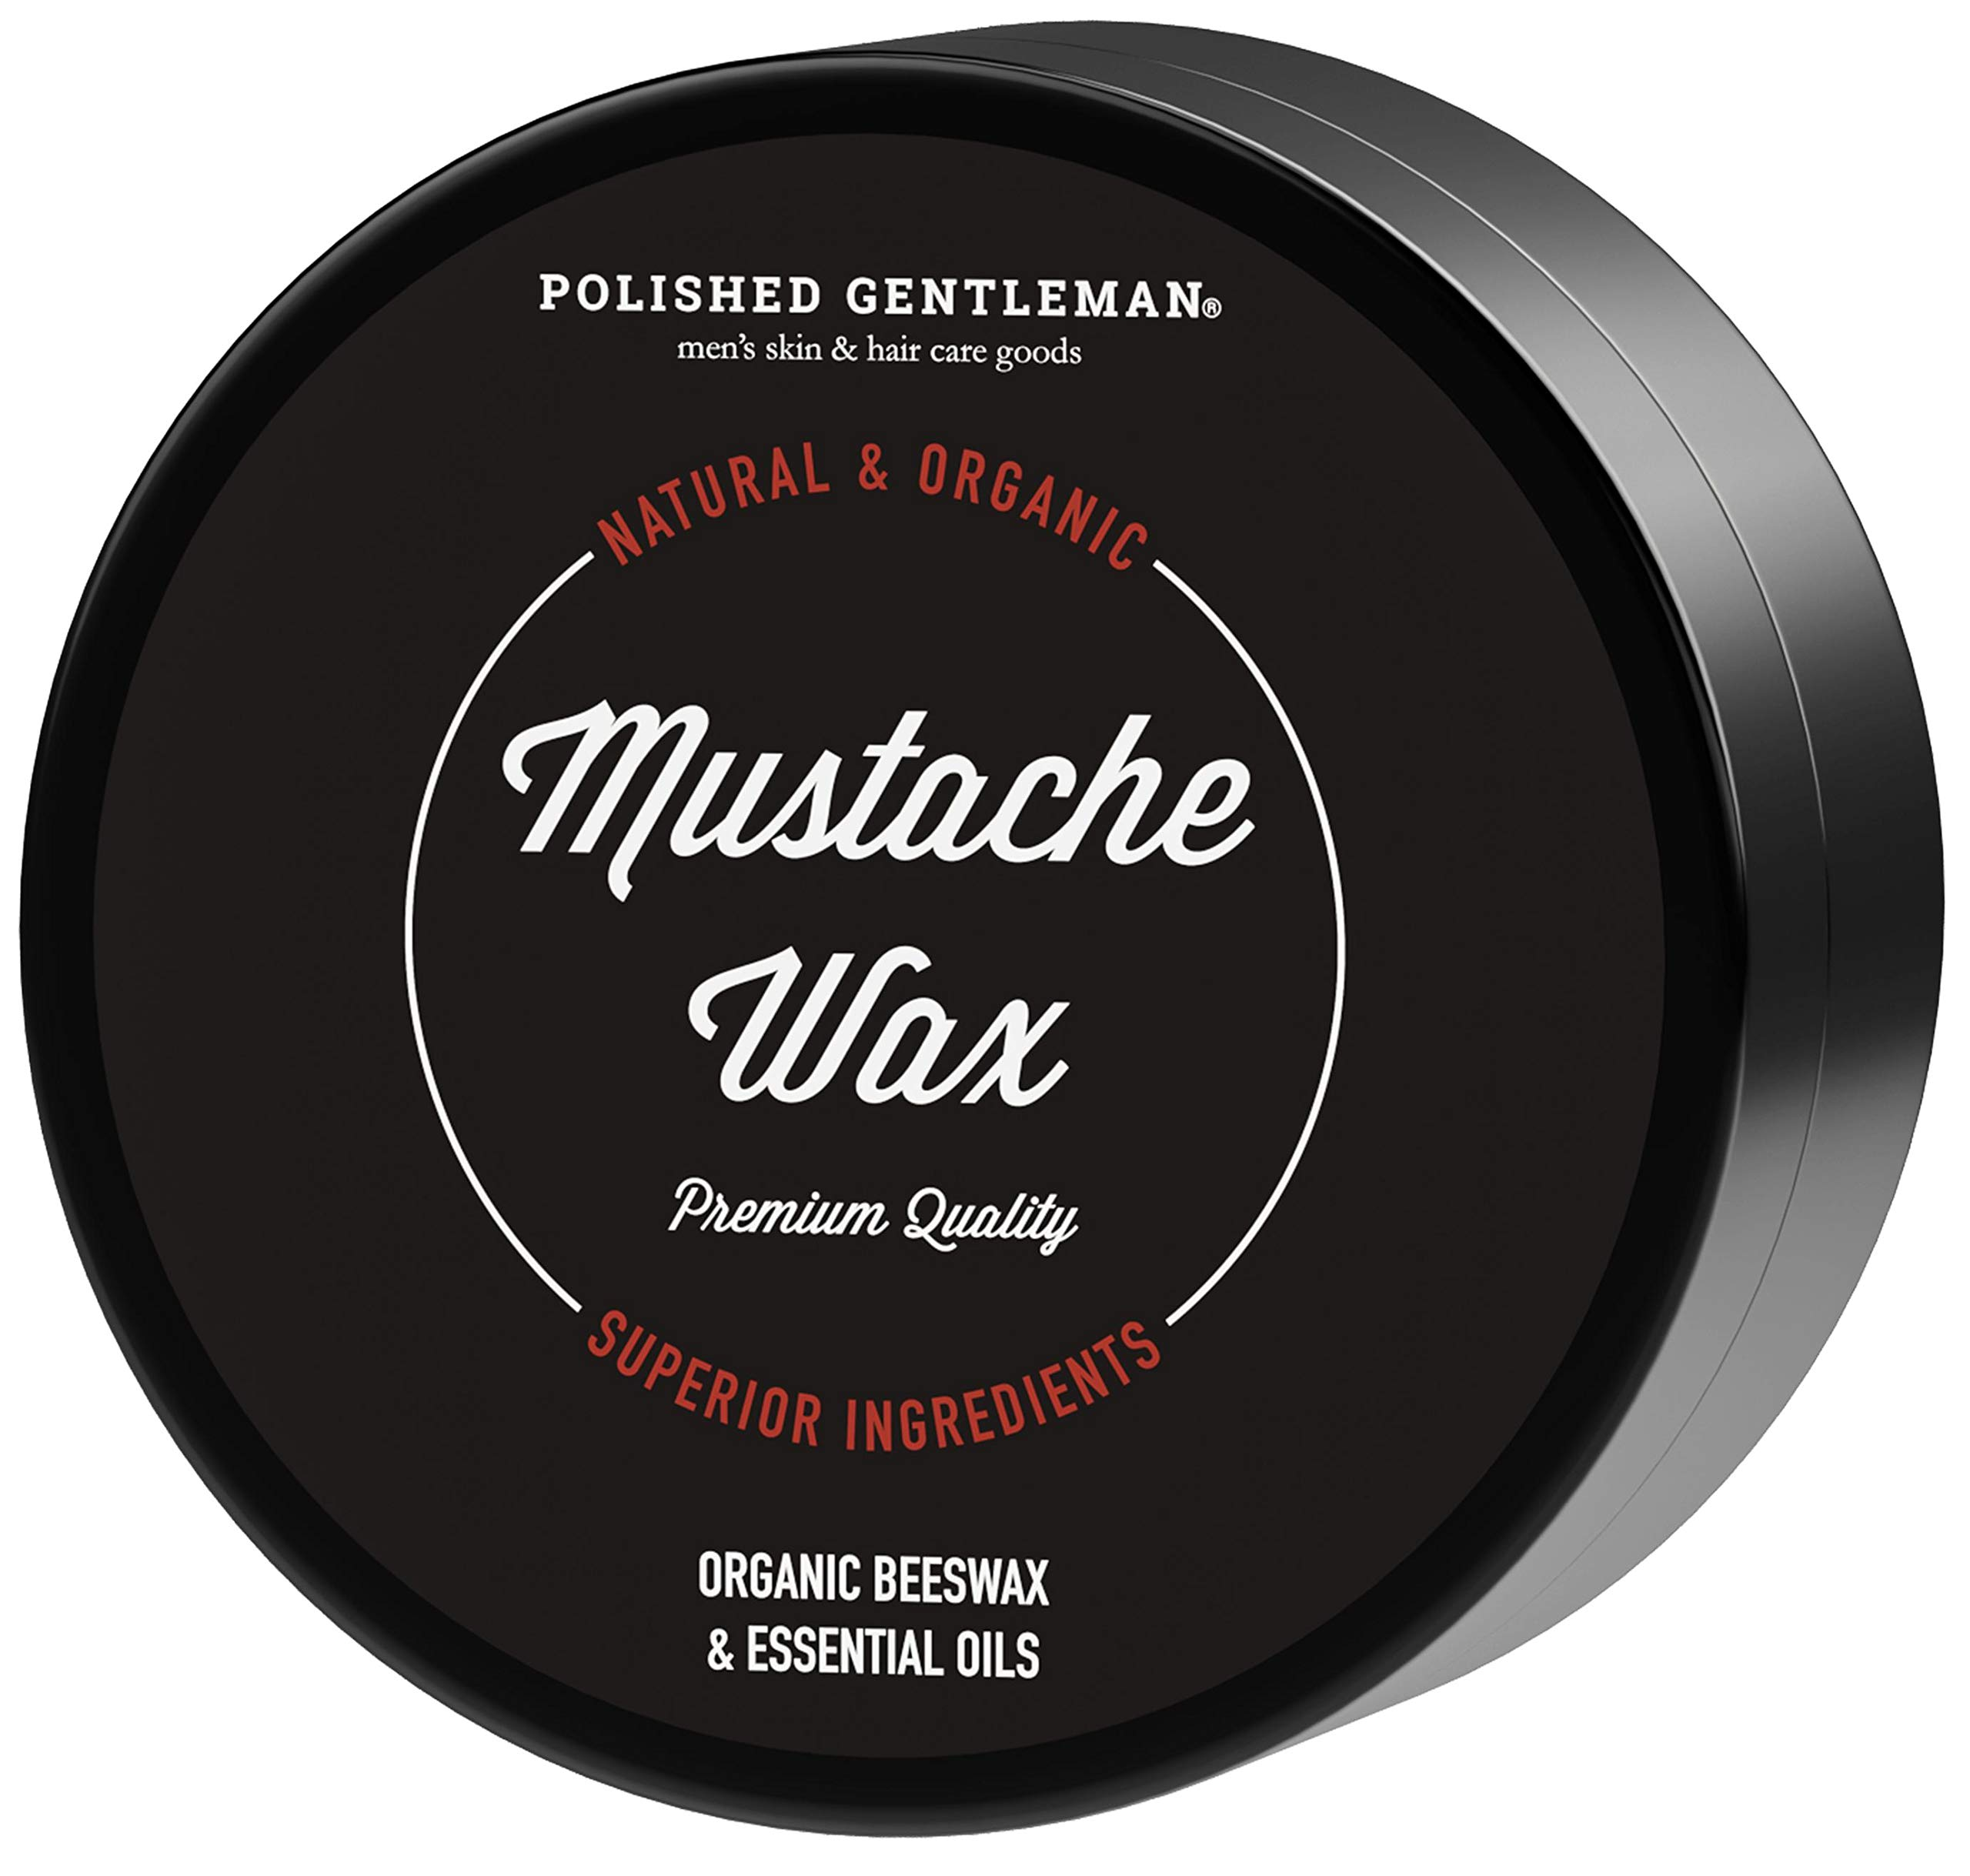 Mustache Styling Beard Beeswax Product - Leave In Conditioner With Beard Oil Shea Butter Coconut Oil Tea Tree Oil - Shaping and Styling Balm - All Natural and Organic Ingredients - 2oz - Made in USA